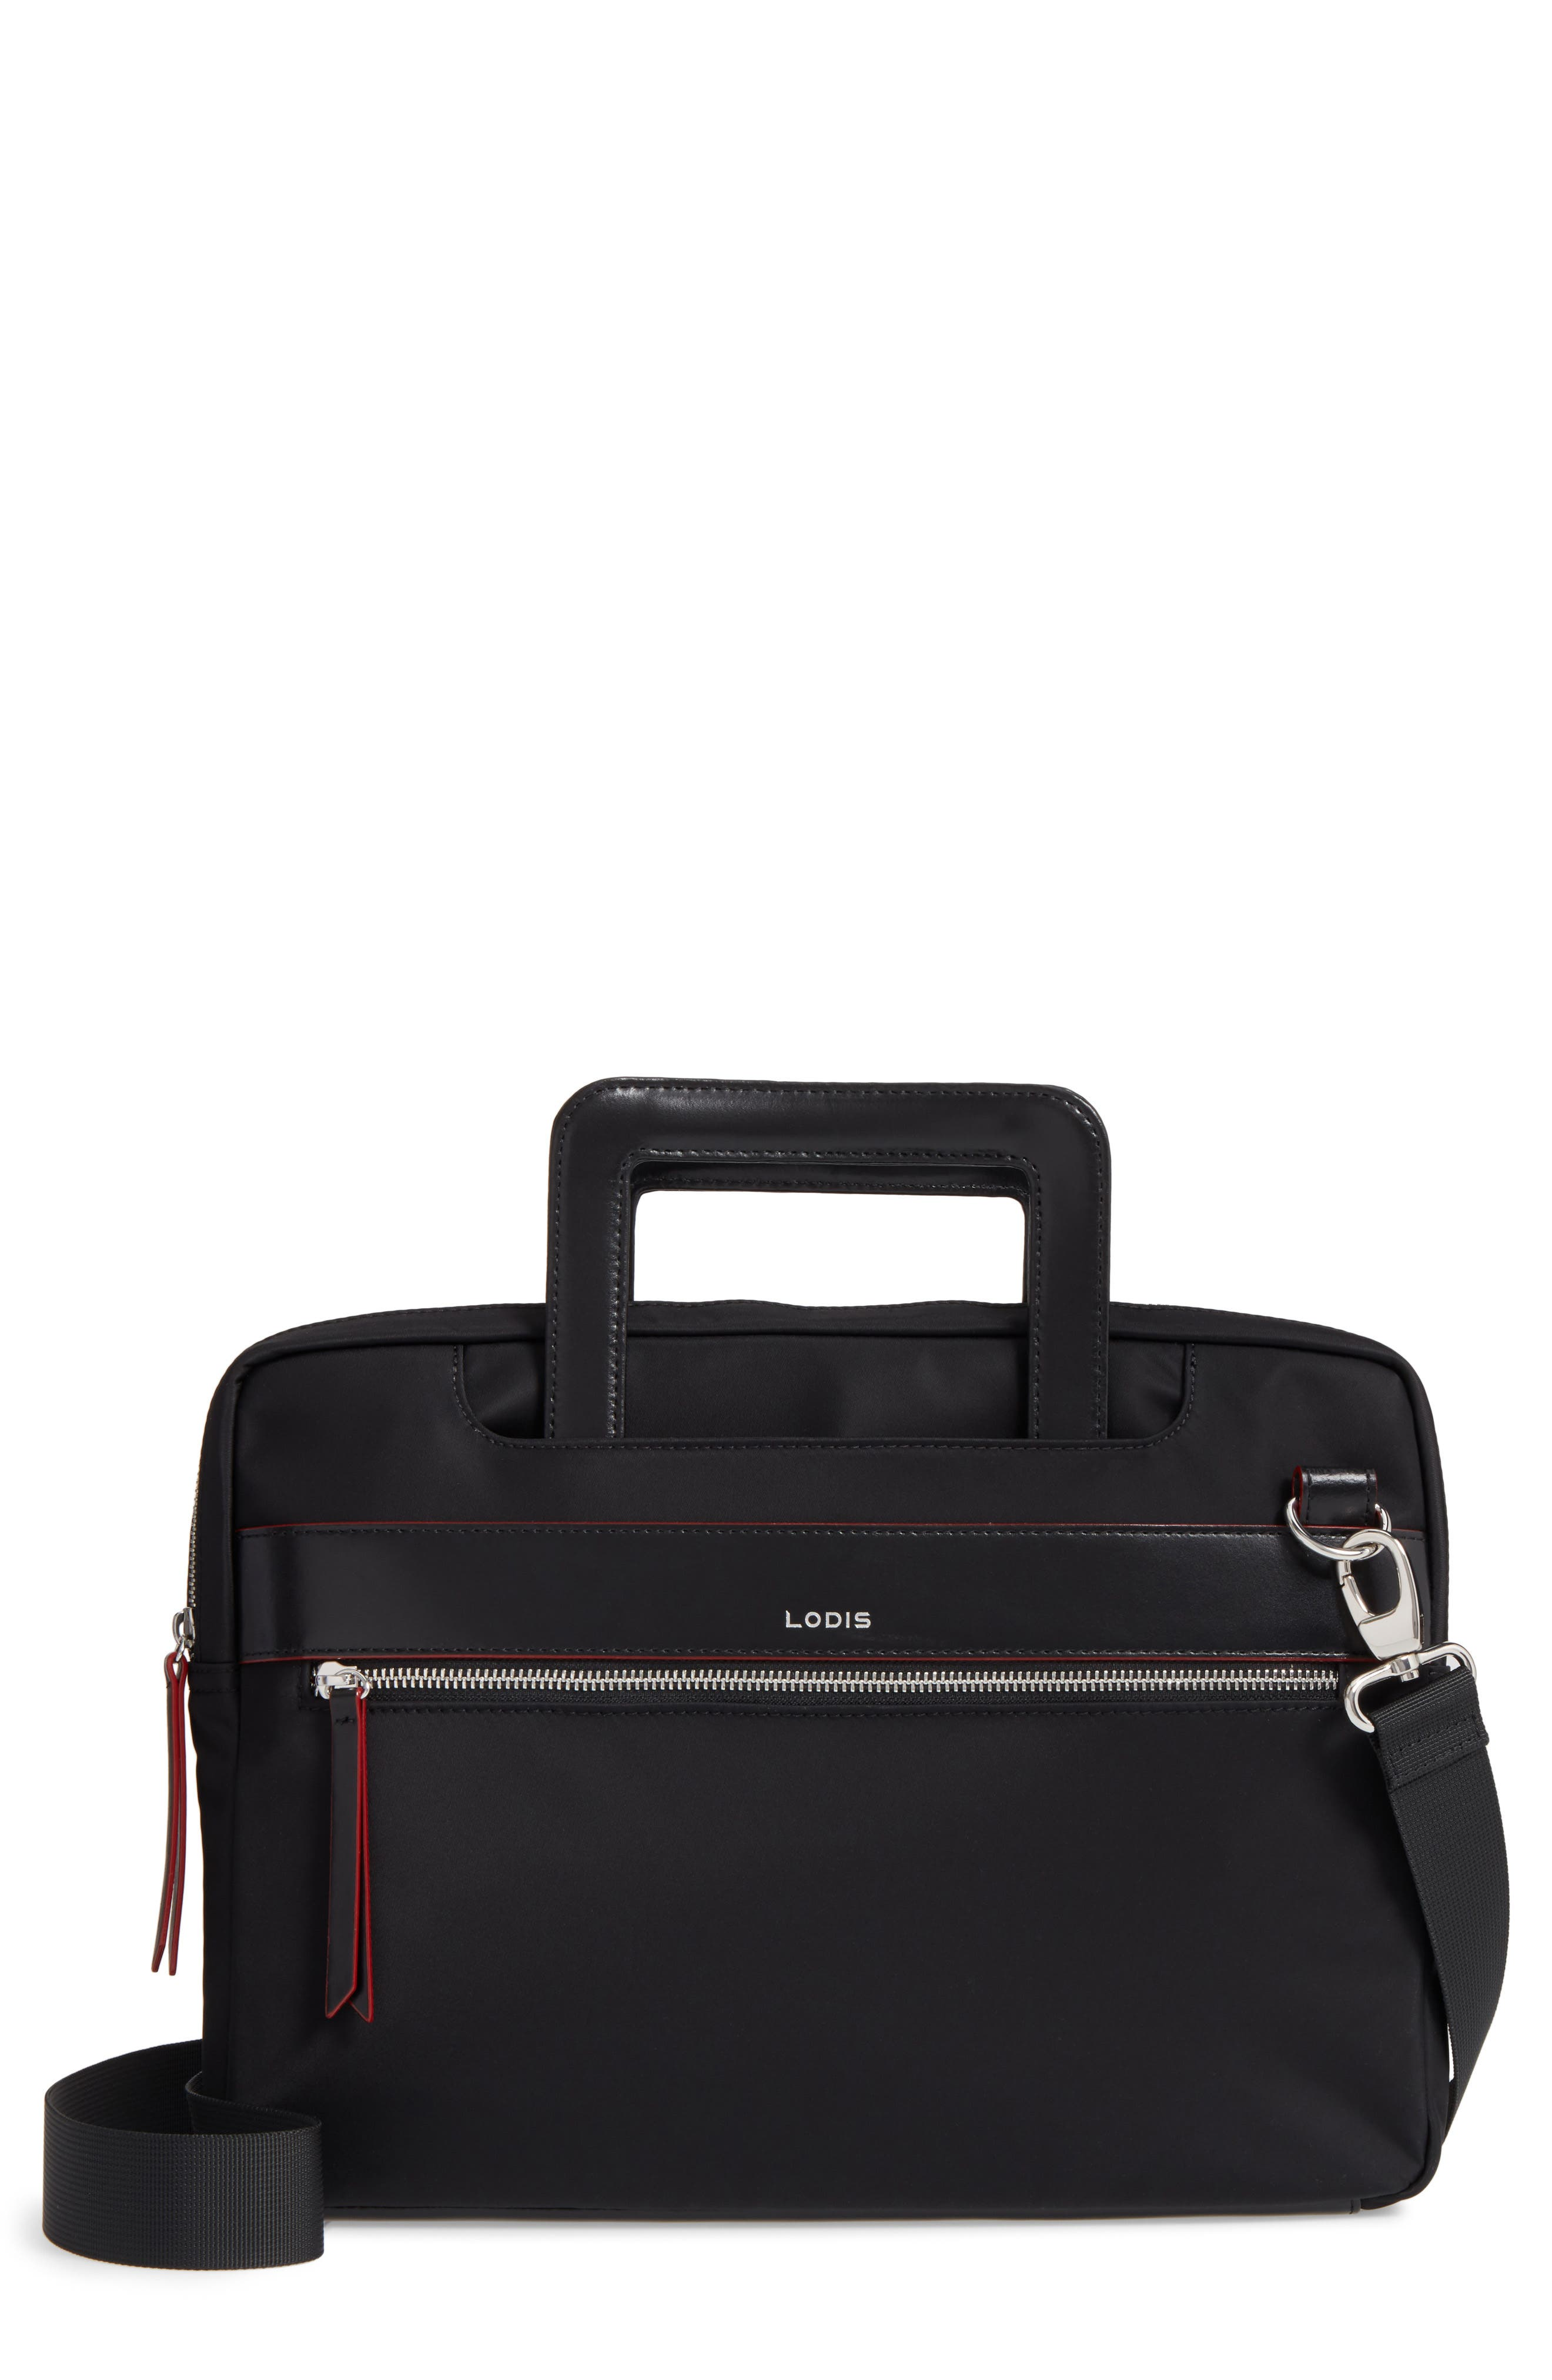 LODIS Cora Laptop Crossbody Bag